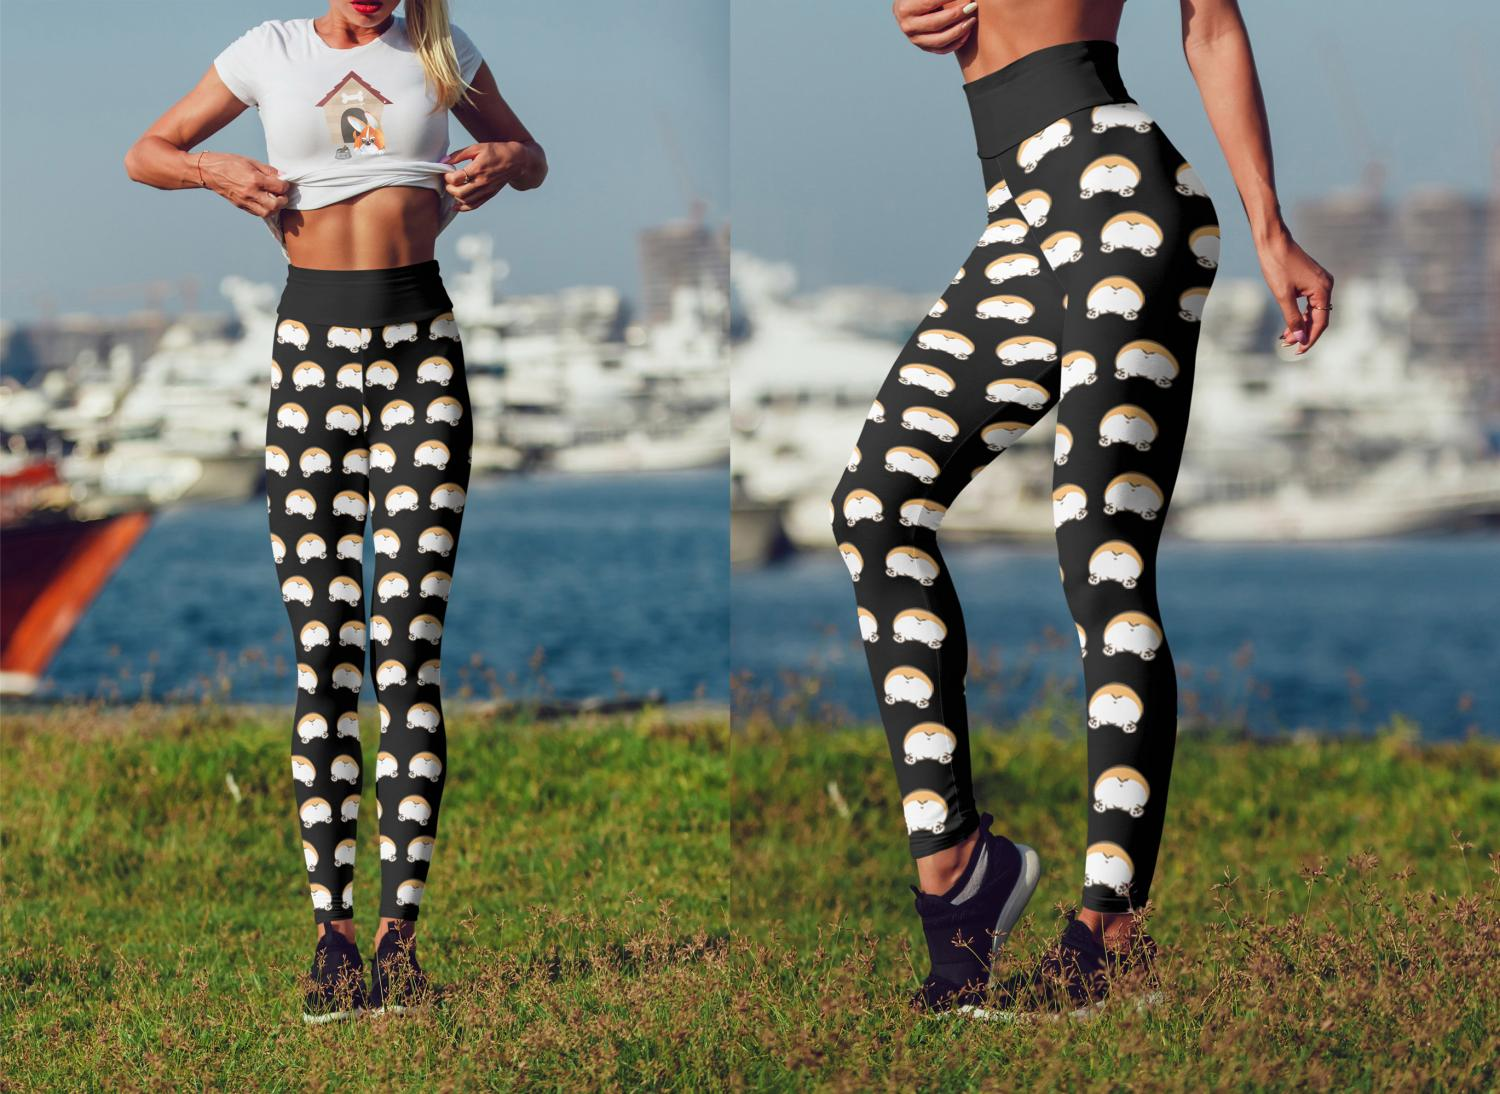 Corgi Butt Leggings - Corgi butt yoga pants turn your booty into a corgi butt